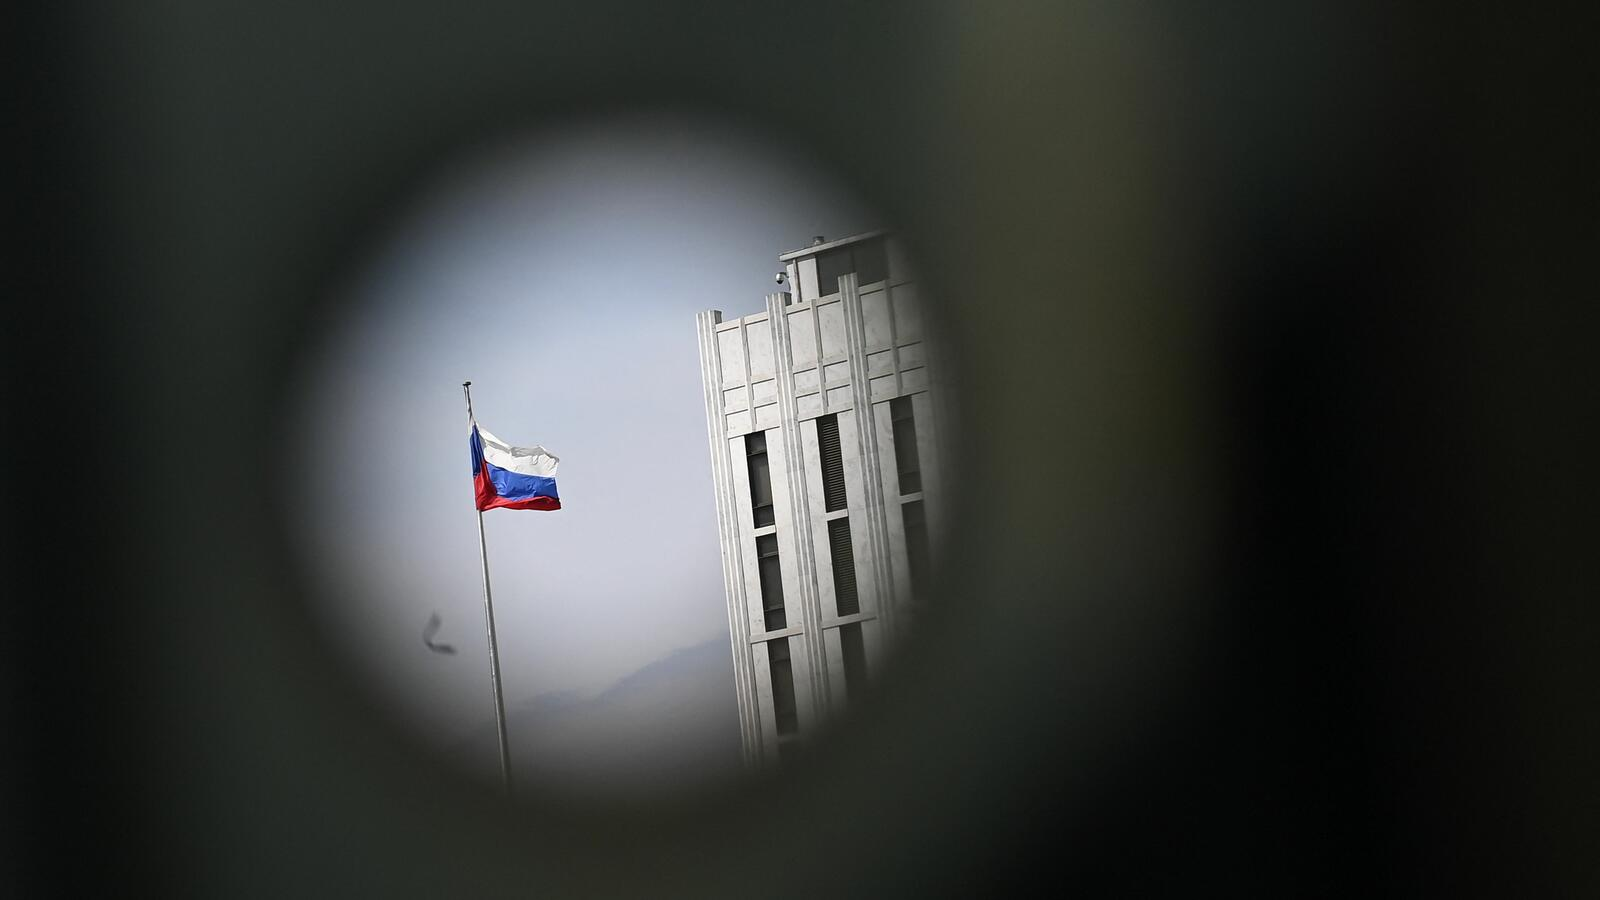 U.S. Imposes Sanctions On Russia Over Election Interference, Hacks